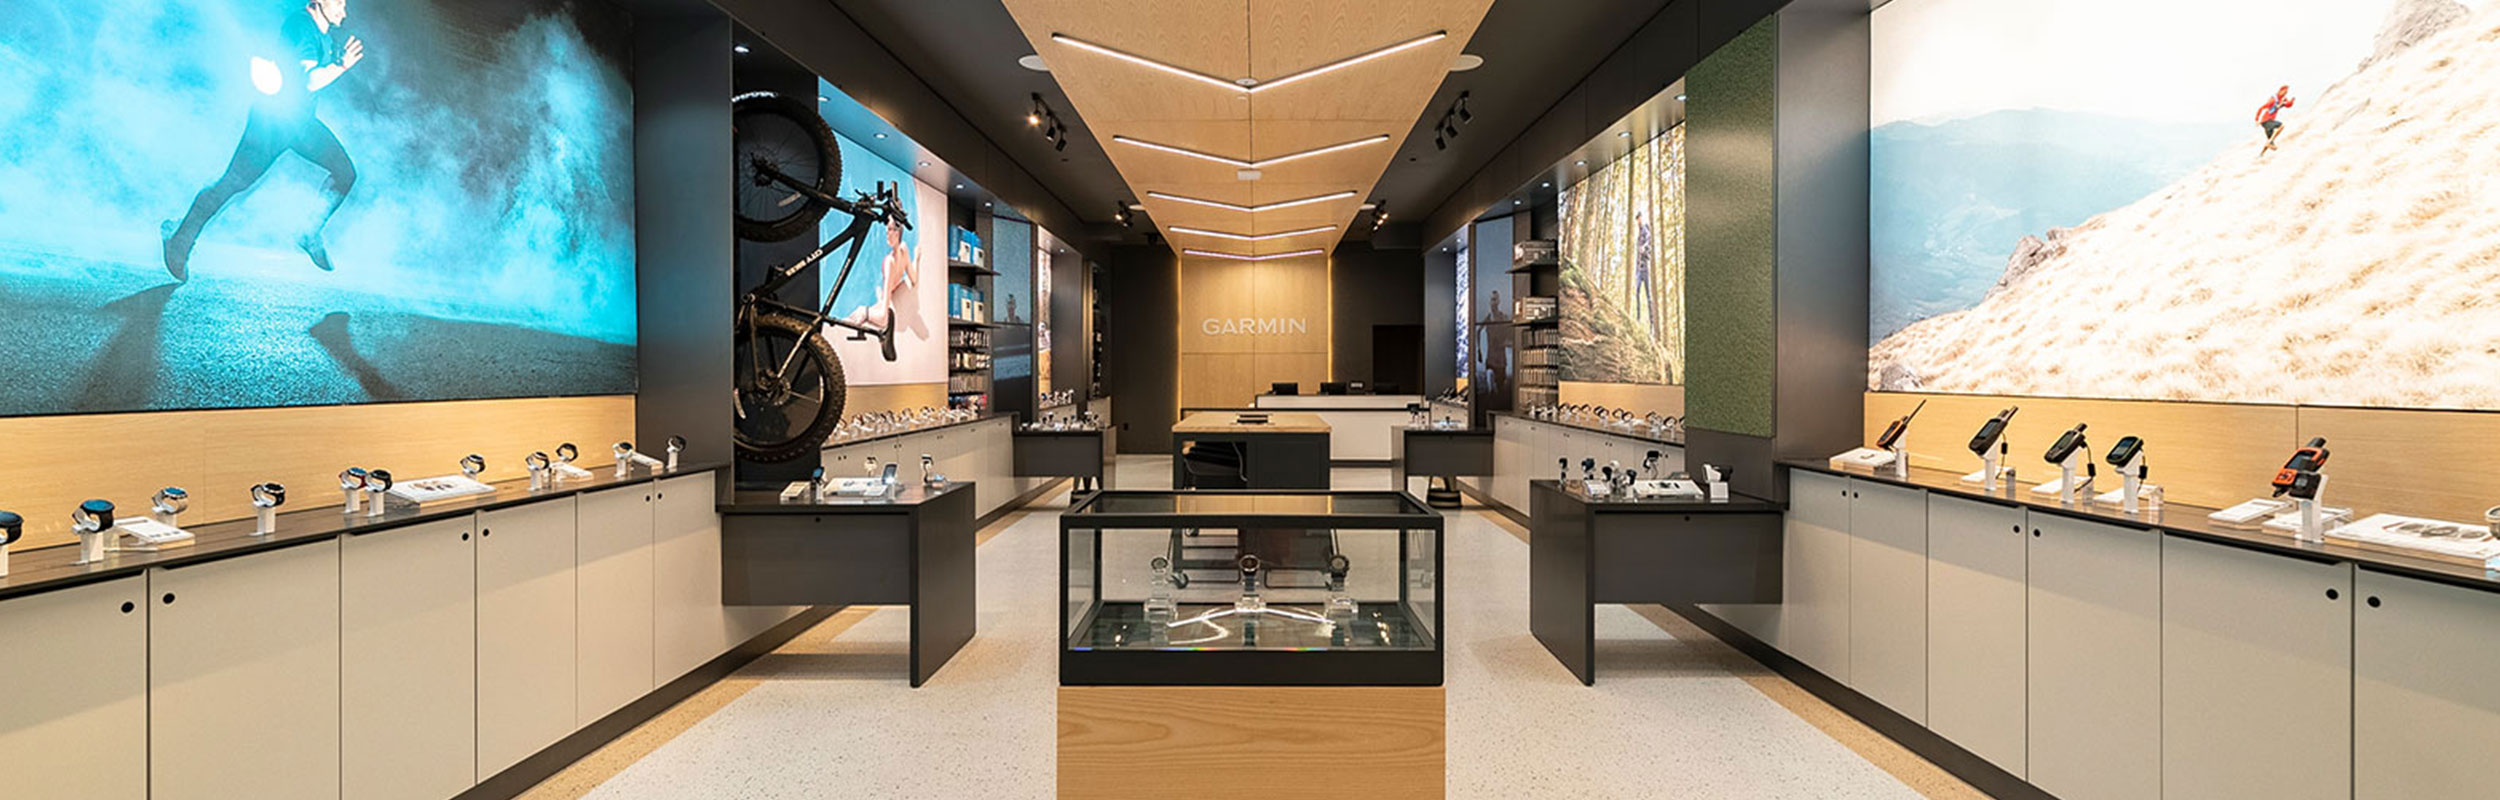 The interior of the Garmin retail store in Miami, including display cases and signage